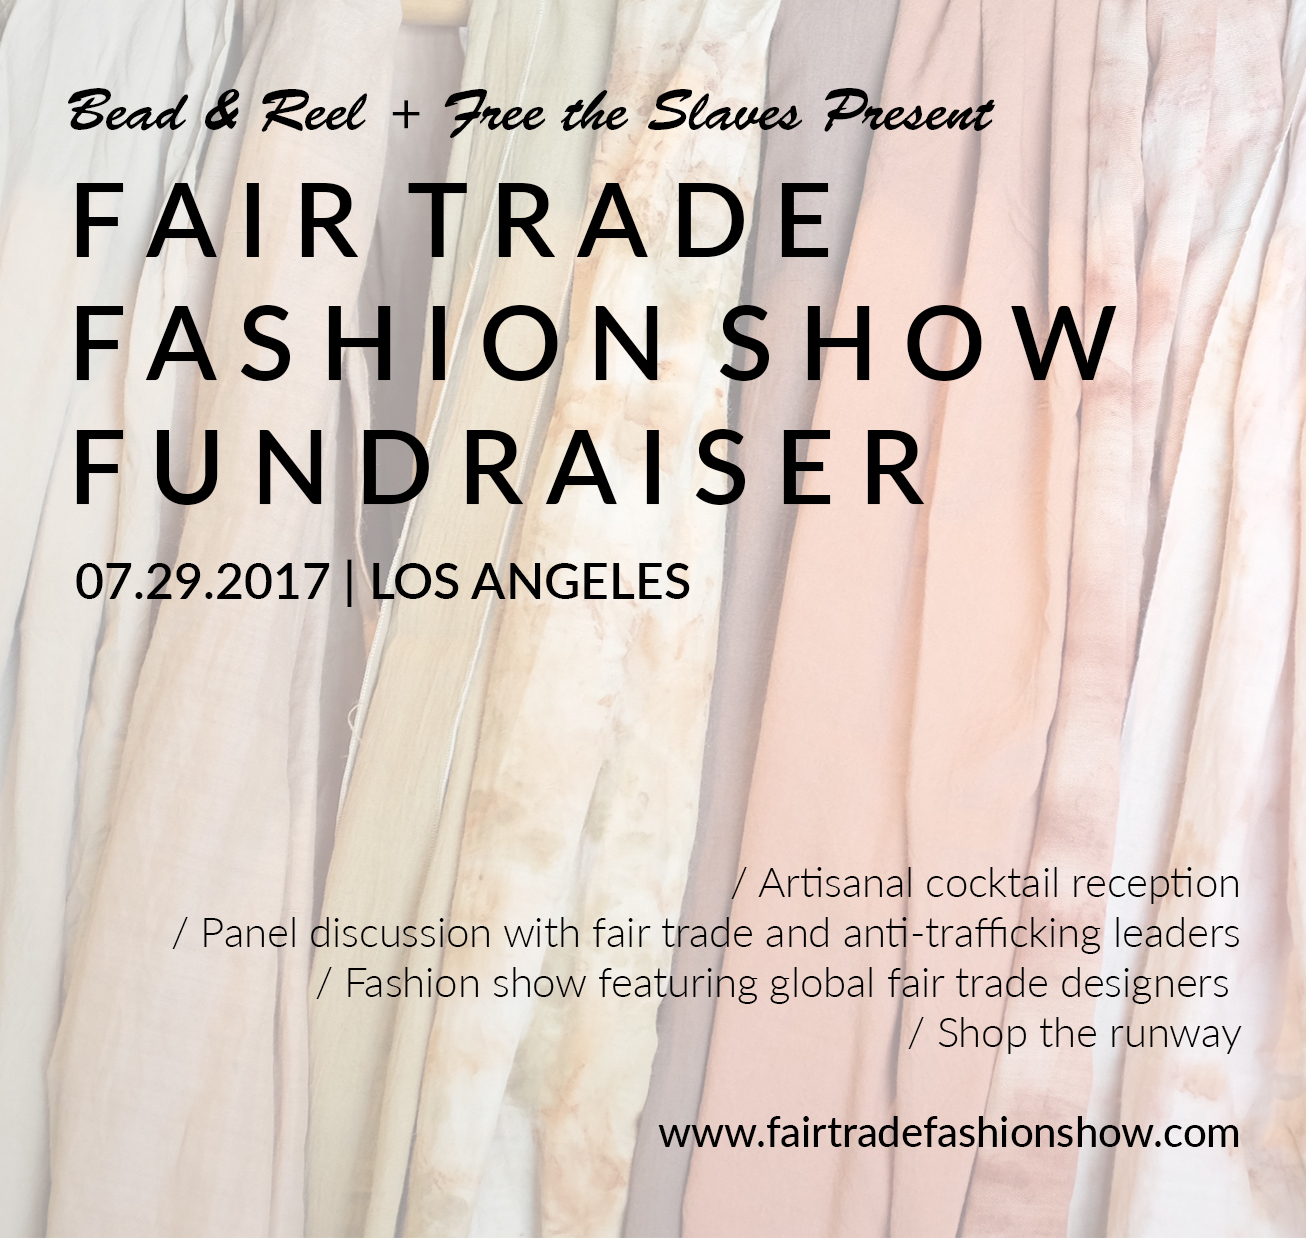 We will be representing Malia Designs at the 3rd Annual Fair Trade Fashion Show & Fundraiser! Join us as we discuss and highlight how we can fight human trafficking through ethical and sustainable fashion initiatives! Reserve your seats today!